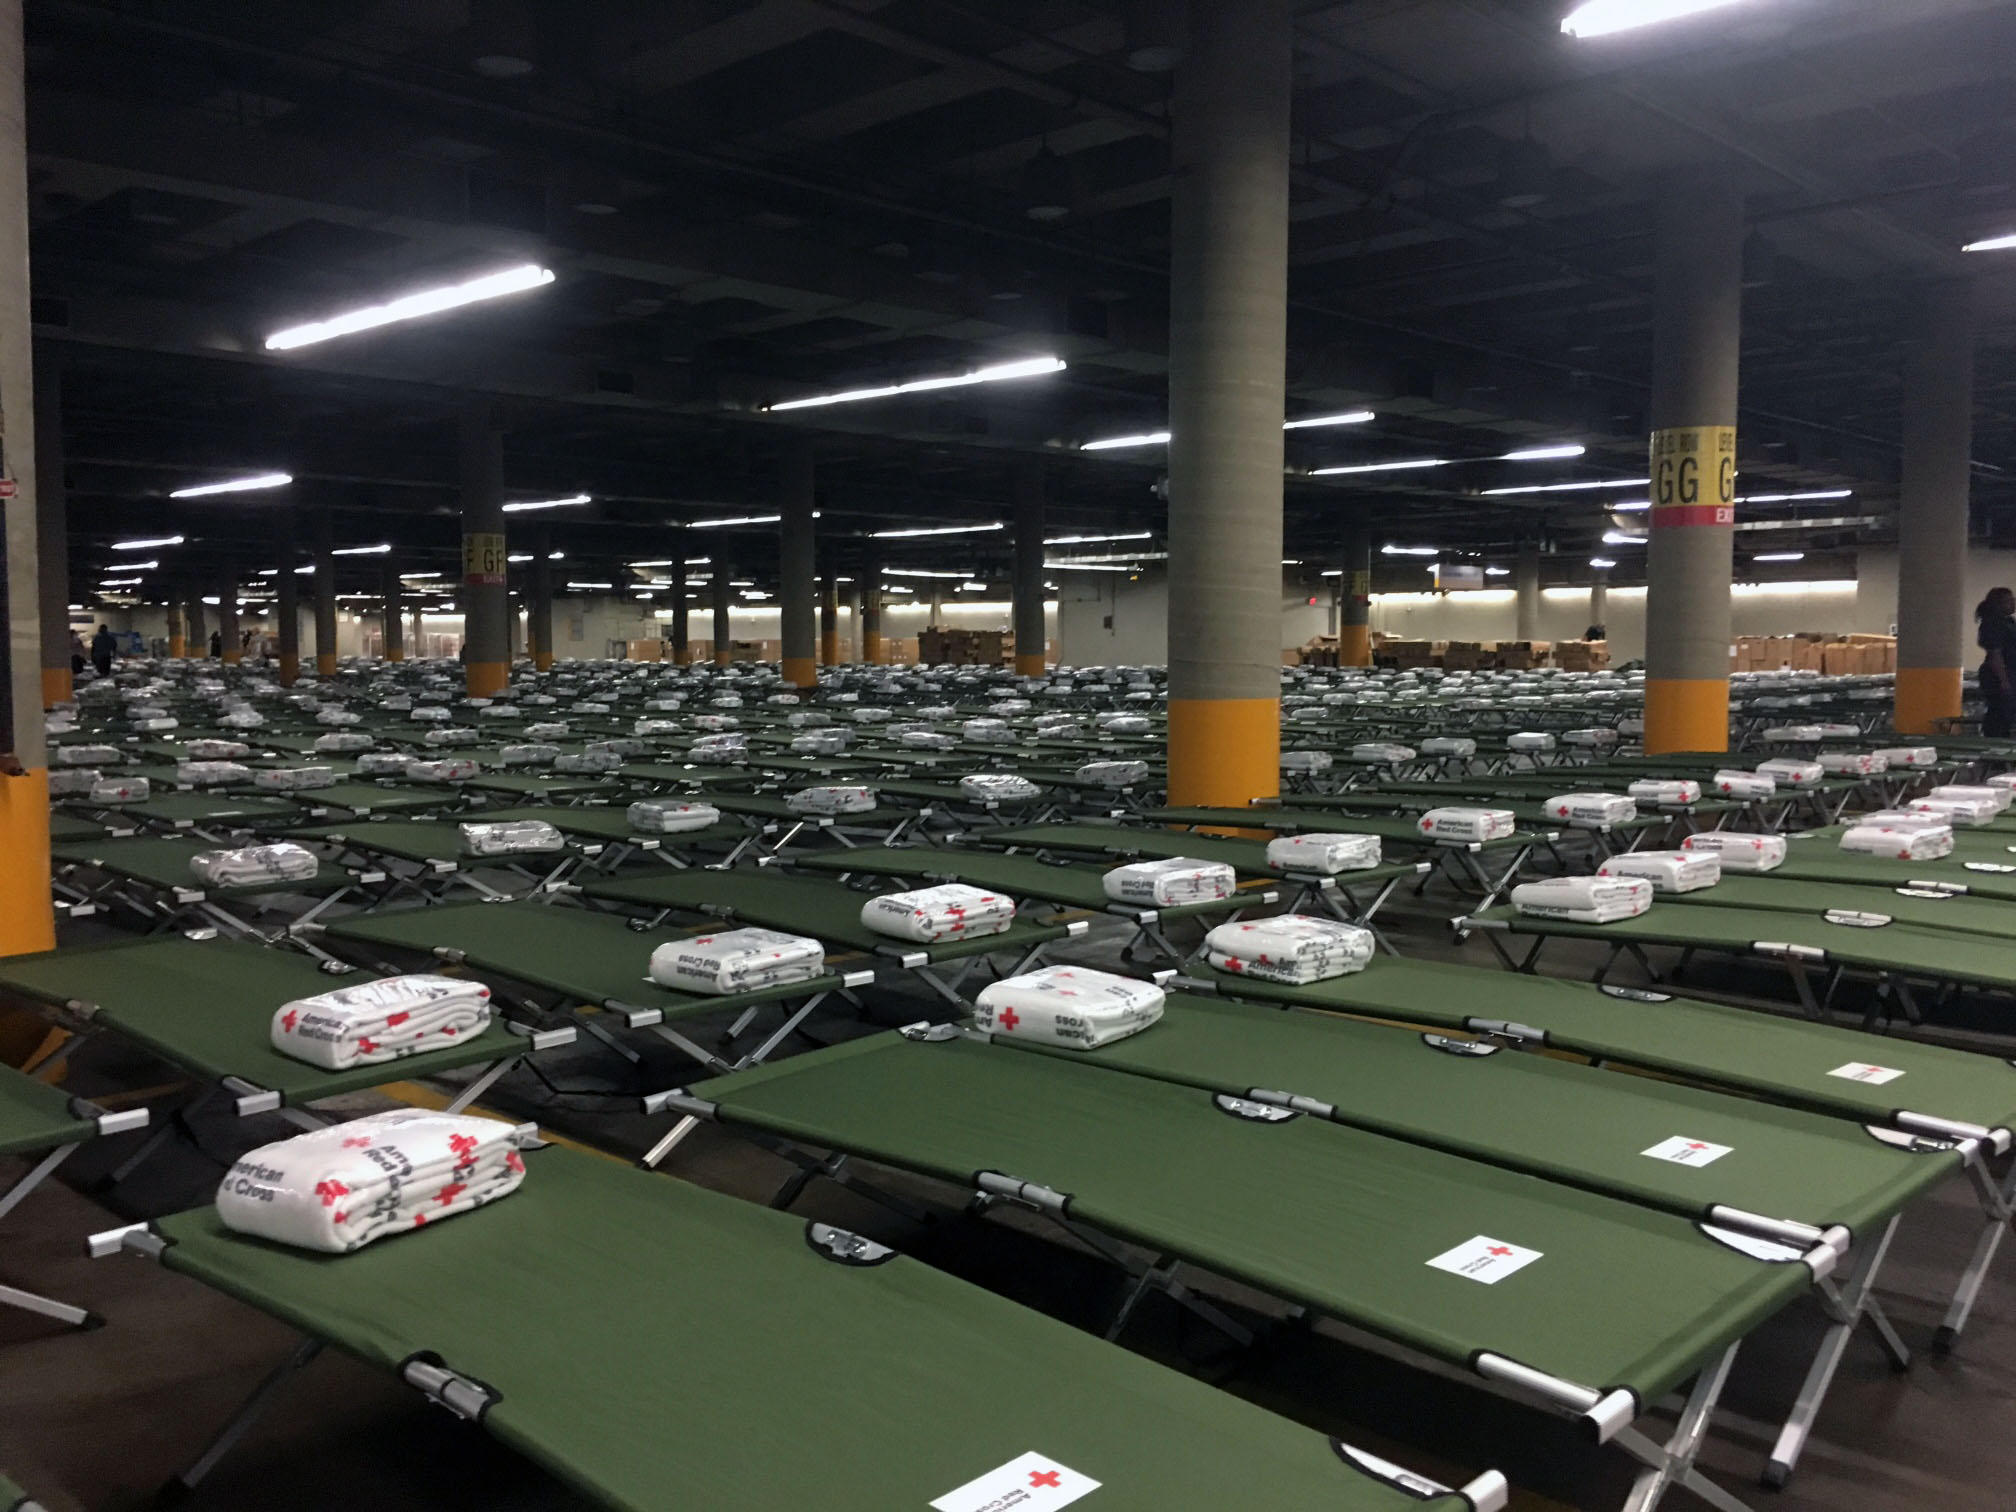 Shelter at GRB over capacity with 7000 evacuees